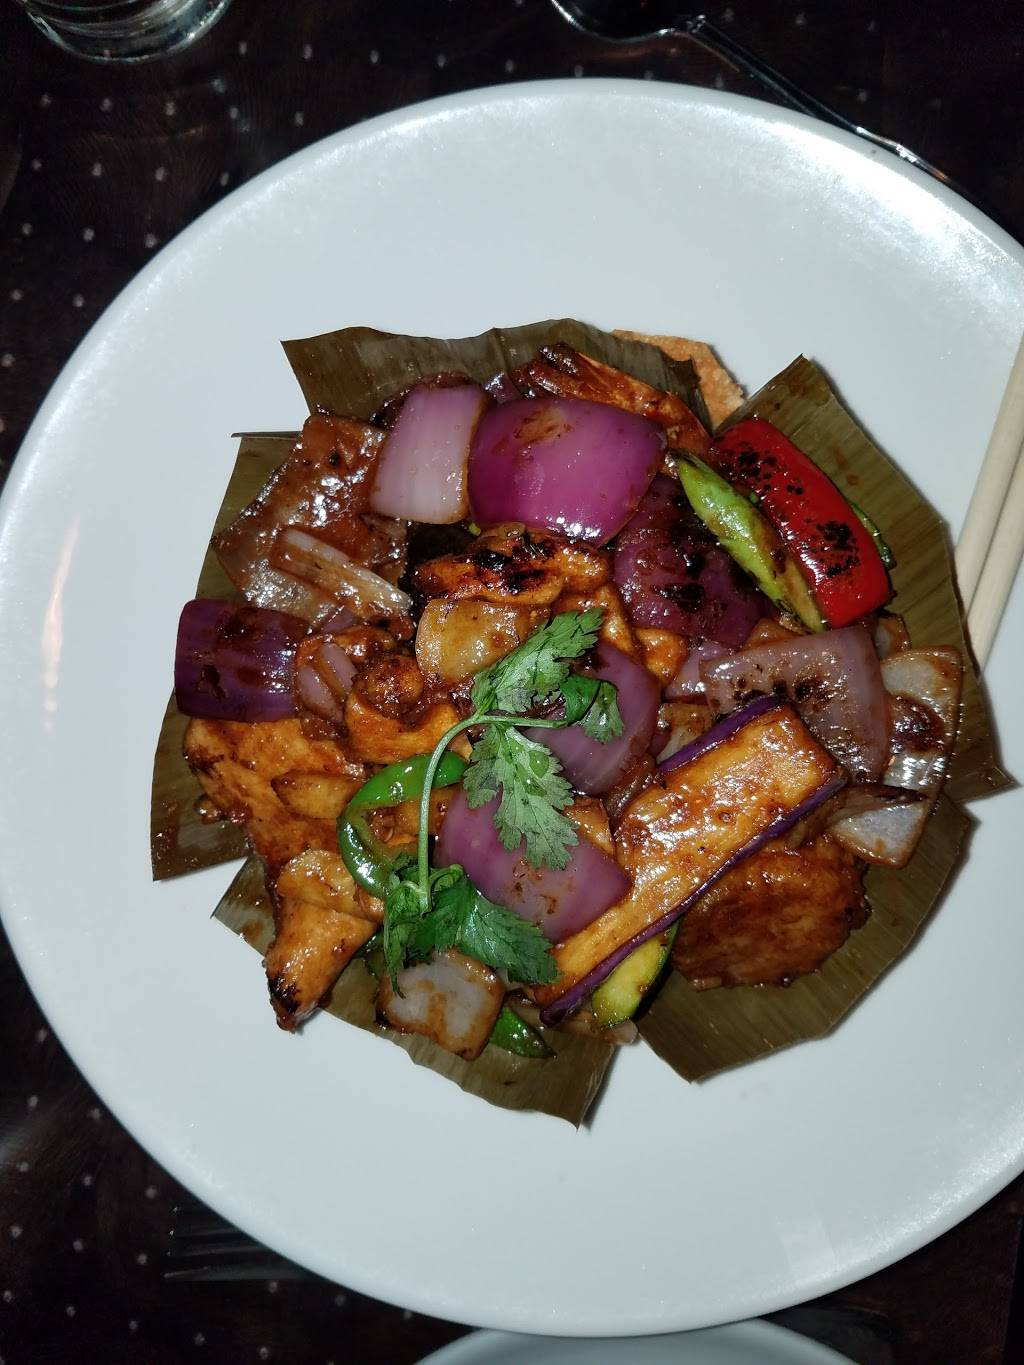 Blue Ginger Asian Fusion Bistro | restaurant | 6234 Sawmill Rd, Dublin, OH 43017, USA | 6147923888 OR +1 614-792-3888